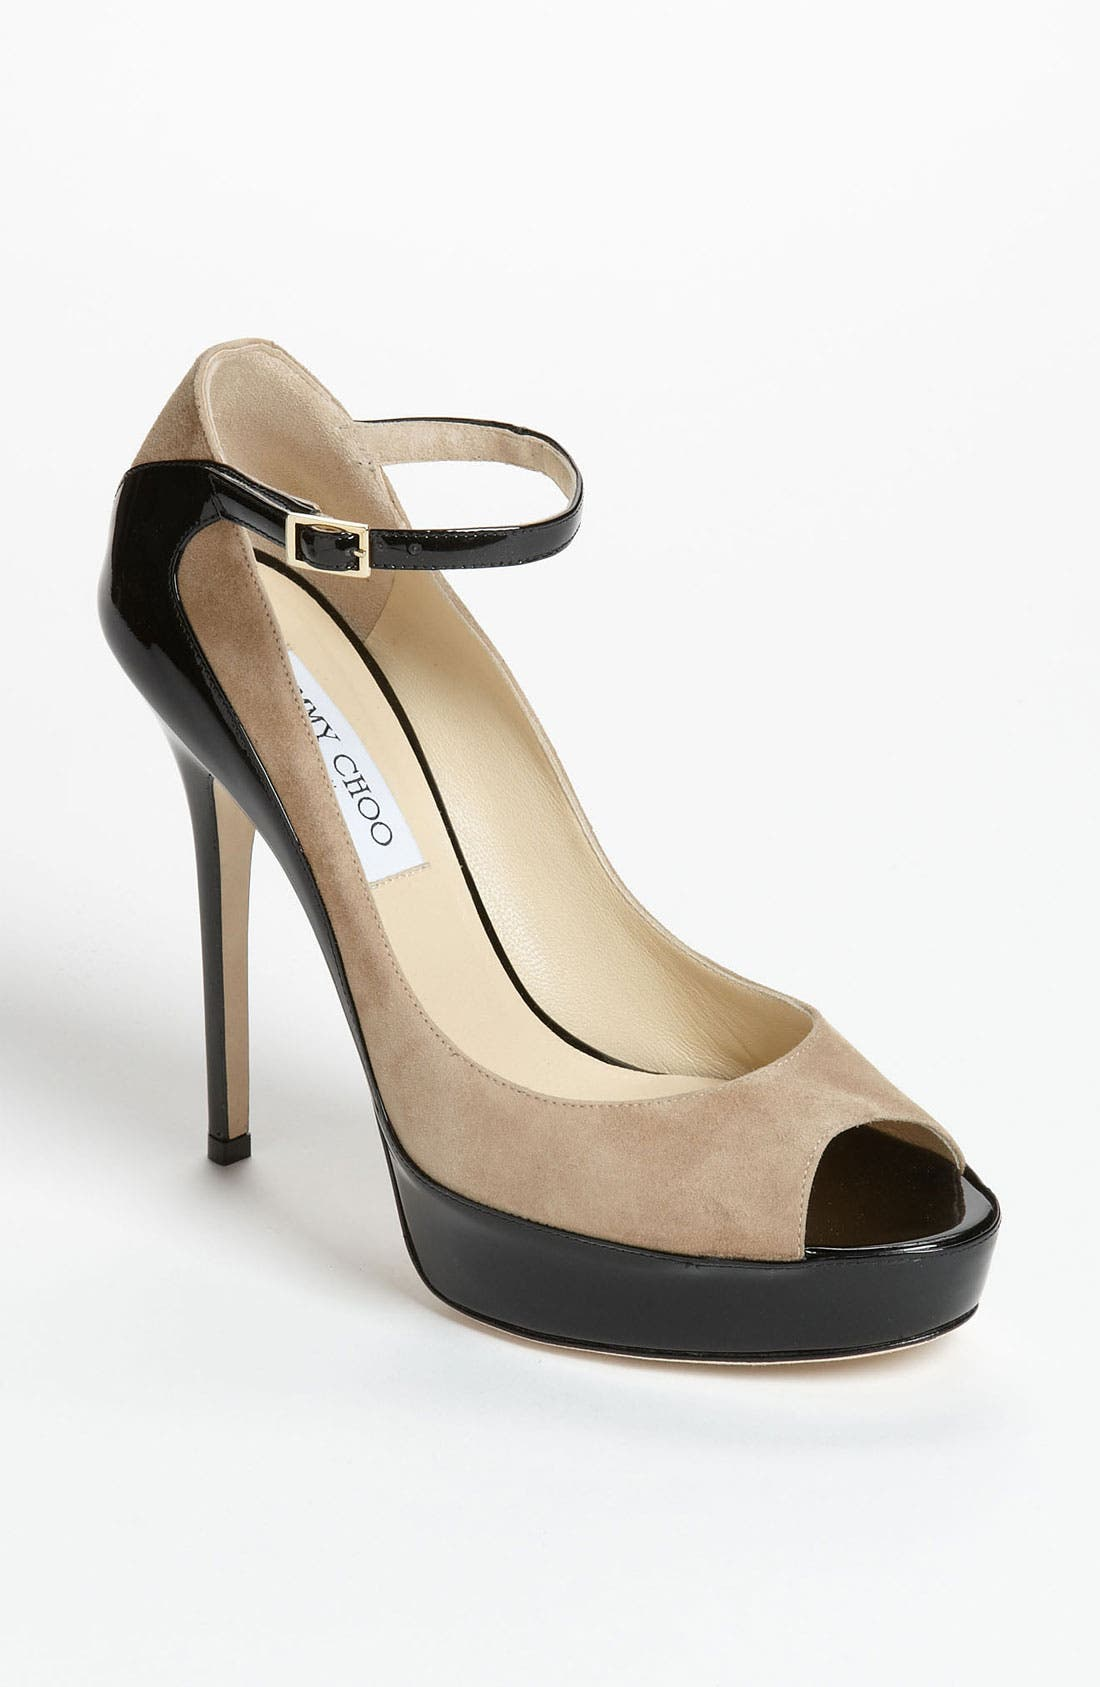 Main Image - Jimmy Choo 'Tami' Pump